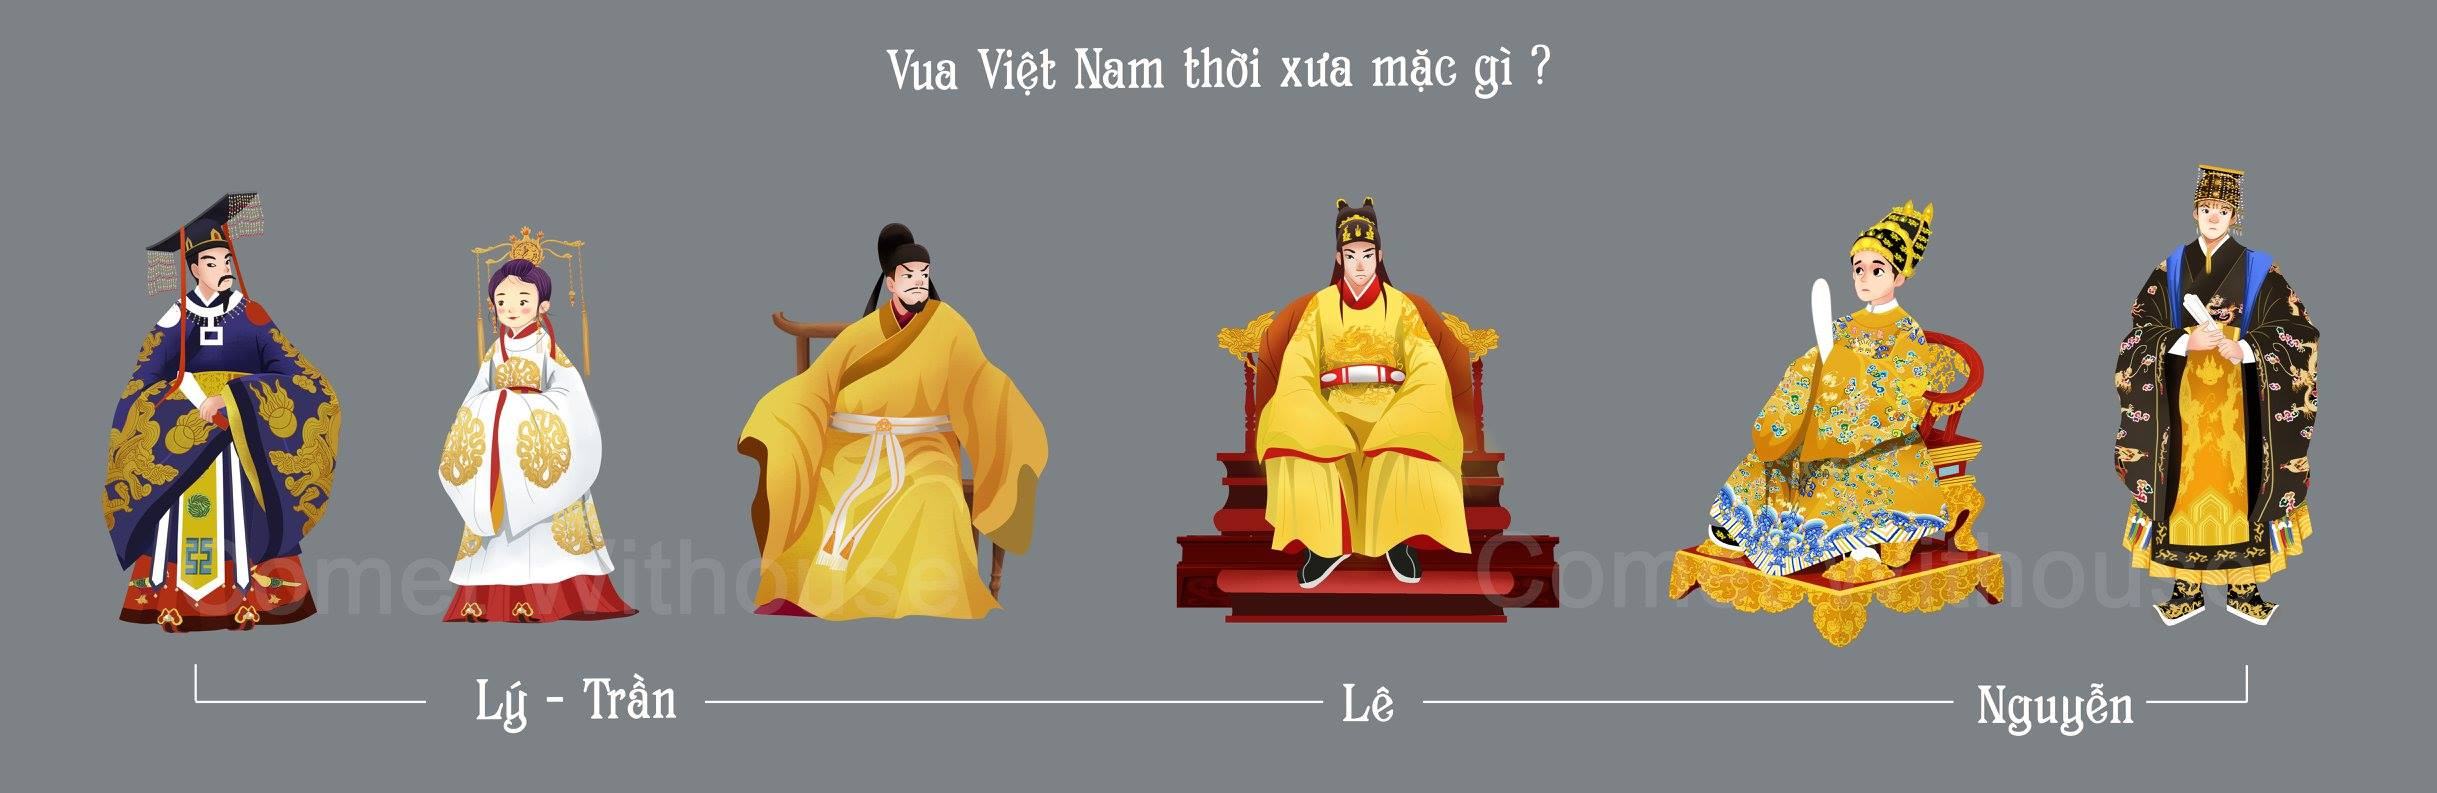 Six kings of Vietnam with their respective royal costumes drawn in Huyen's illustration style